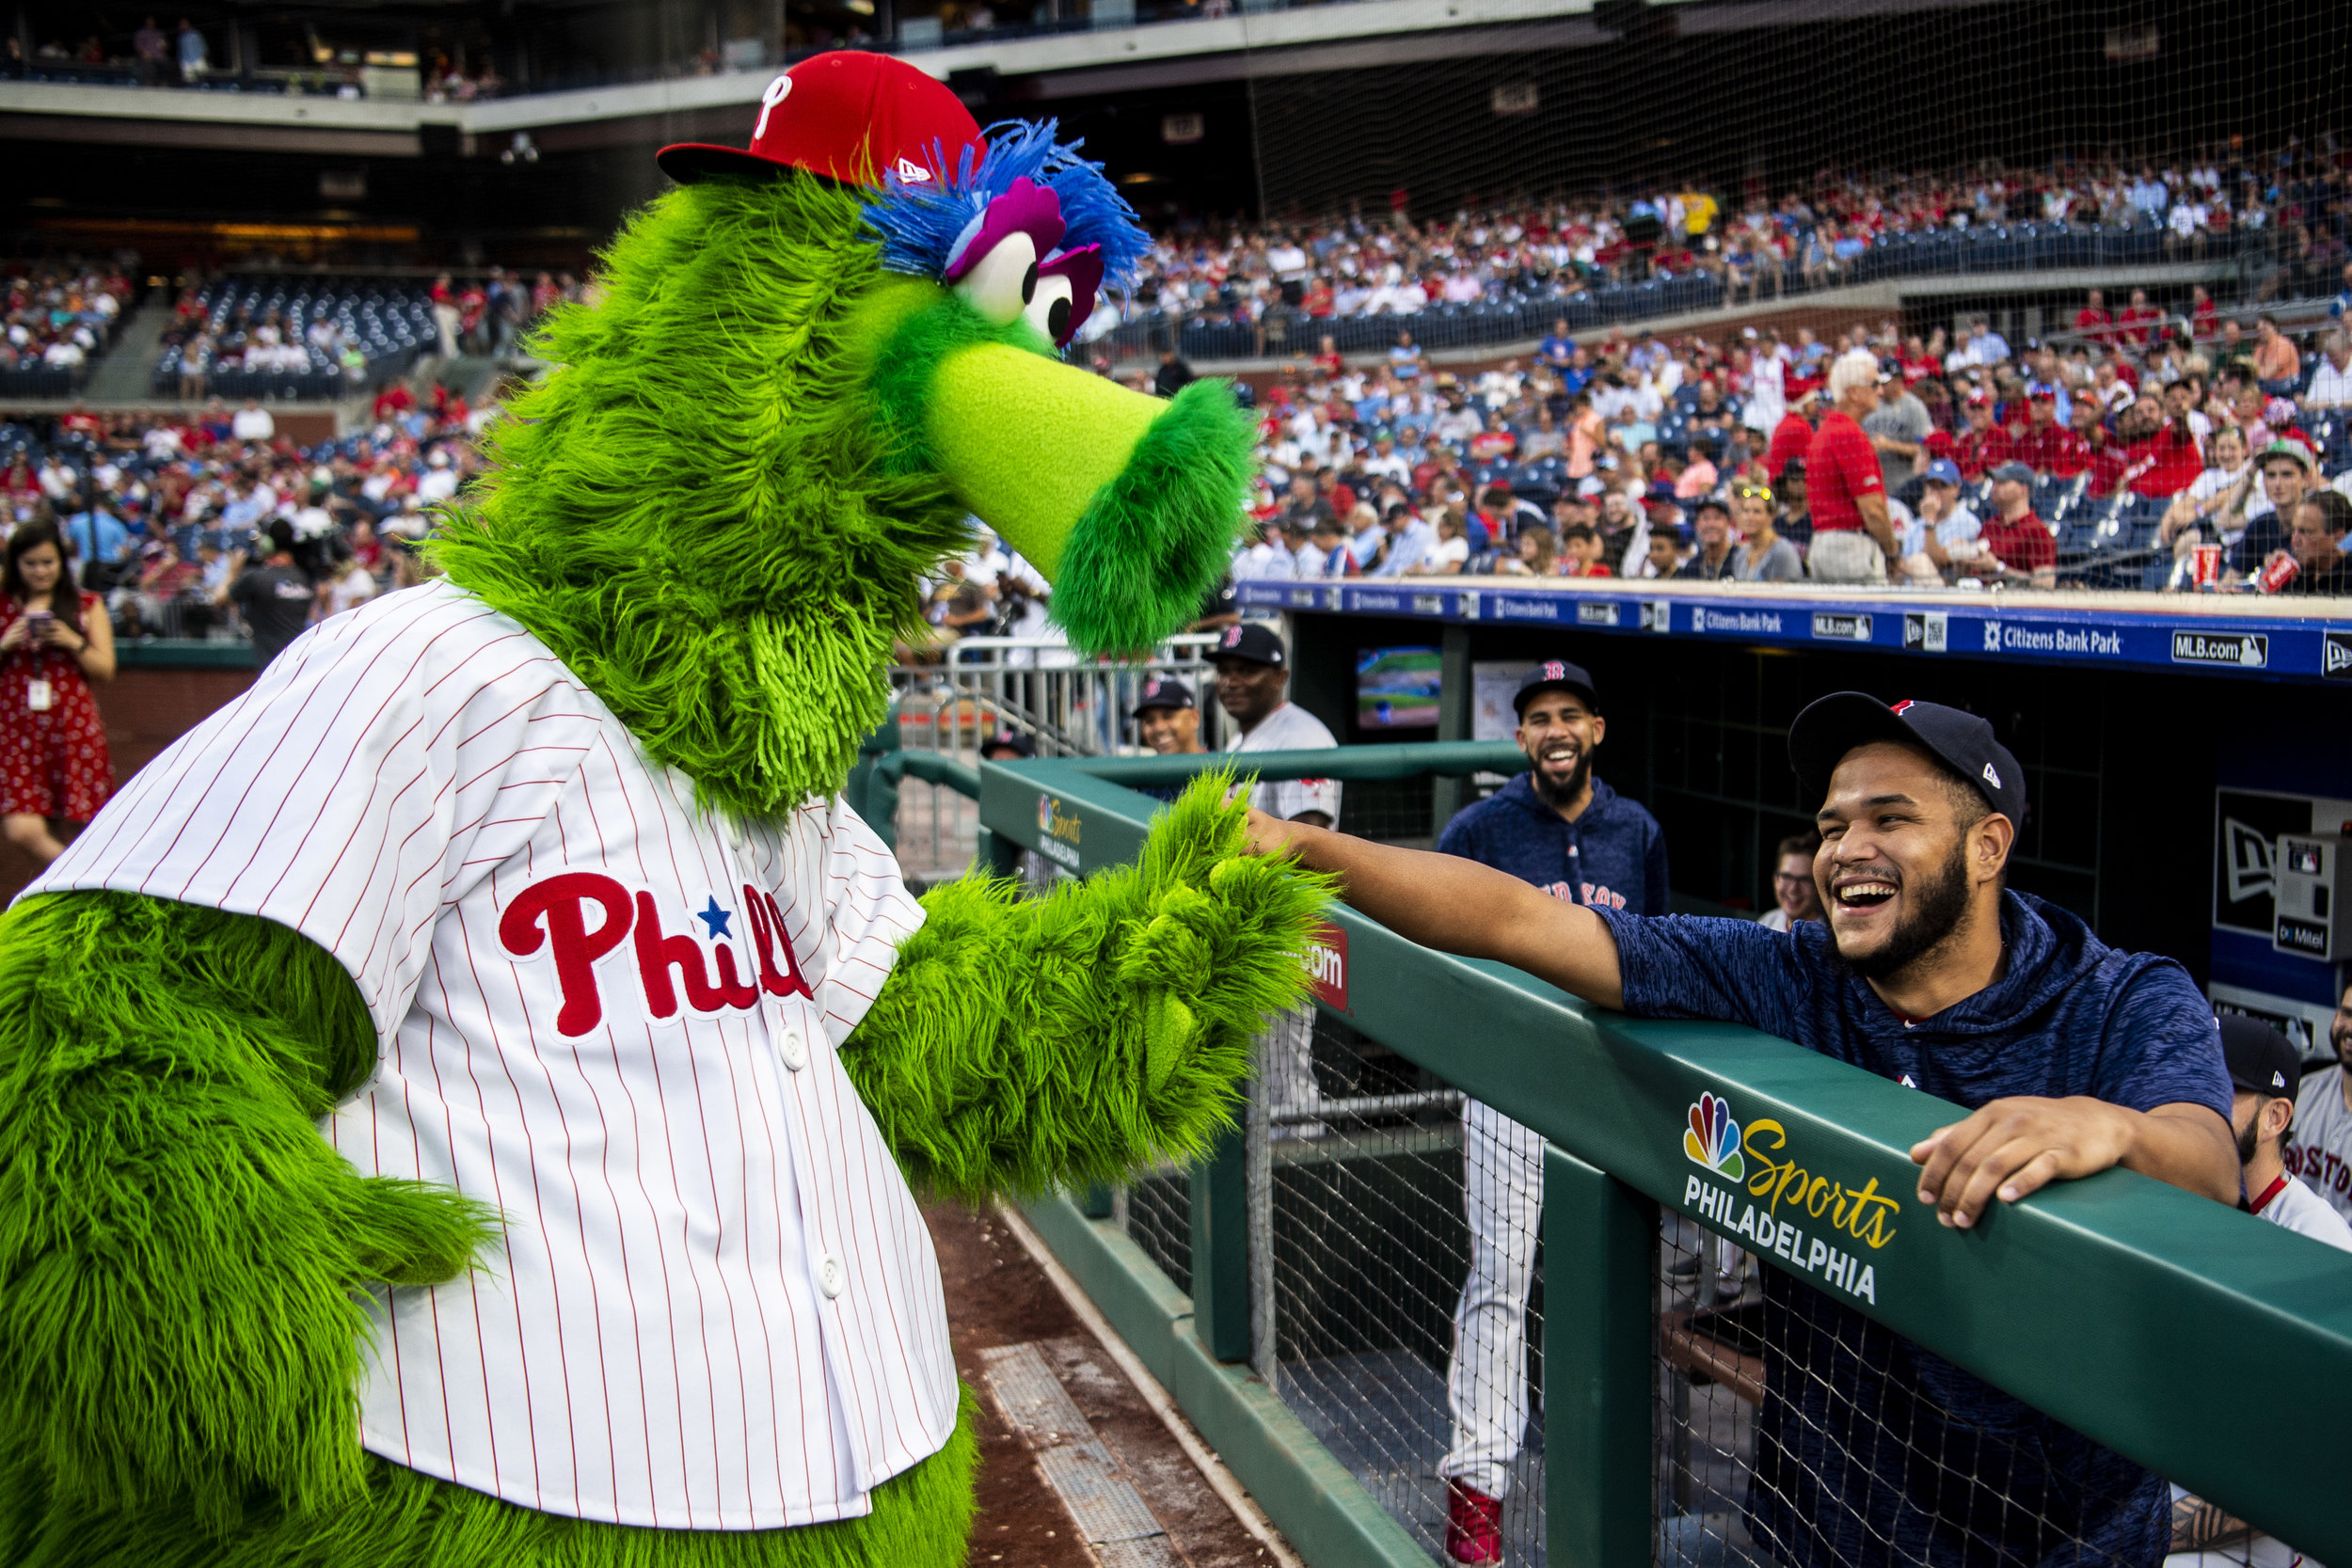 August 15, 2018, Philadelphia, PA: Boston Red Sox pitcher Eduardo Rodriguez jokes with the Phillie Phanatic before the Boston Red Sox face the Philadelphia Phillies at Citizen Bank Park in Philadelphia, Pennsylvania on Wednesday, August 15, 2018. (Photo by Matthew Thomas/Boston Red Sox)